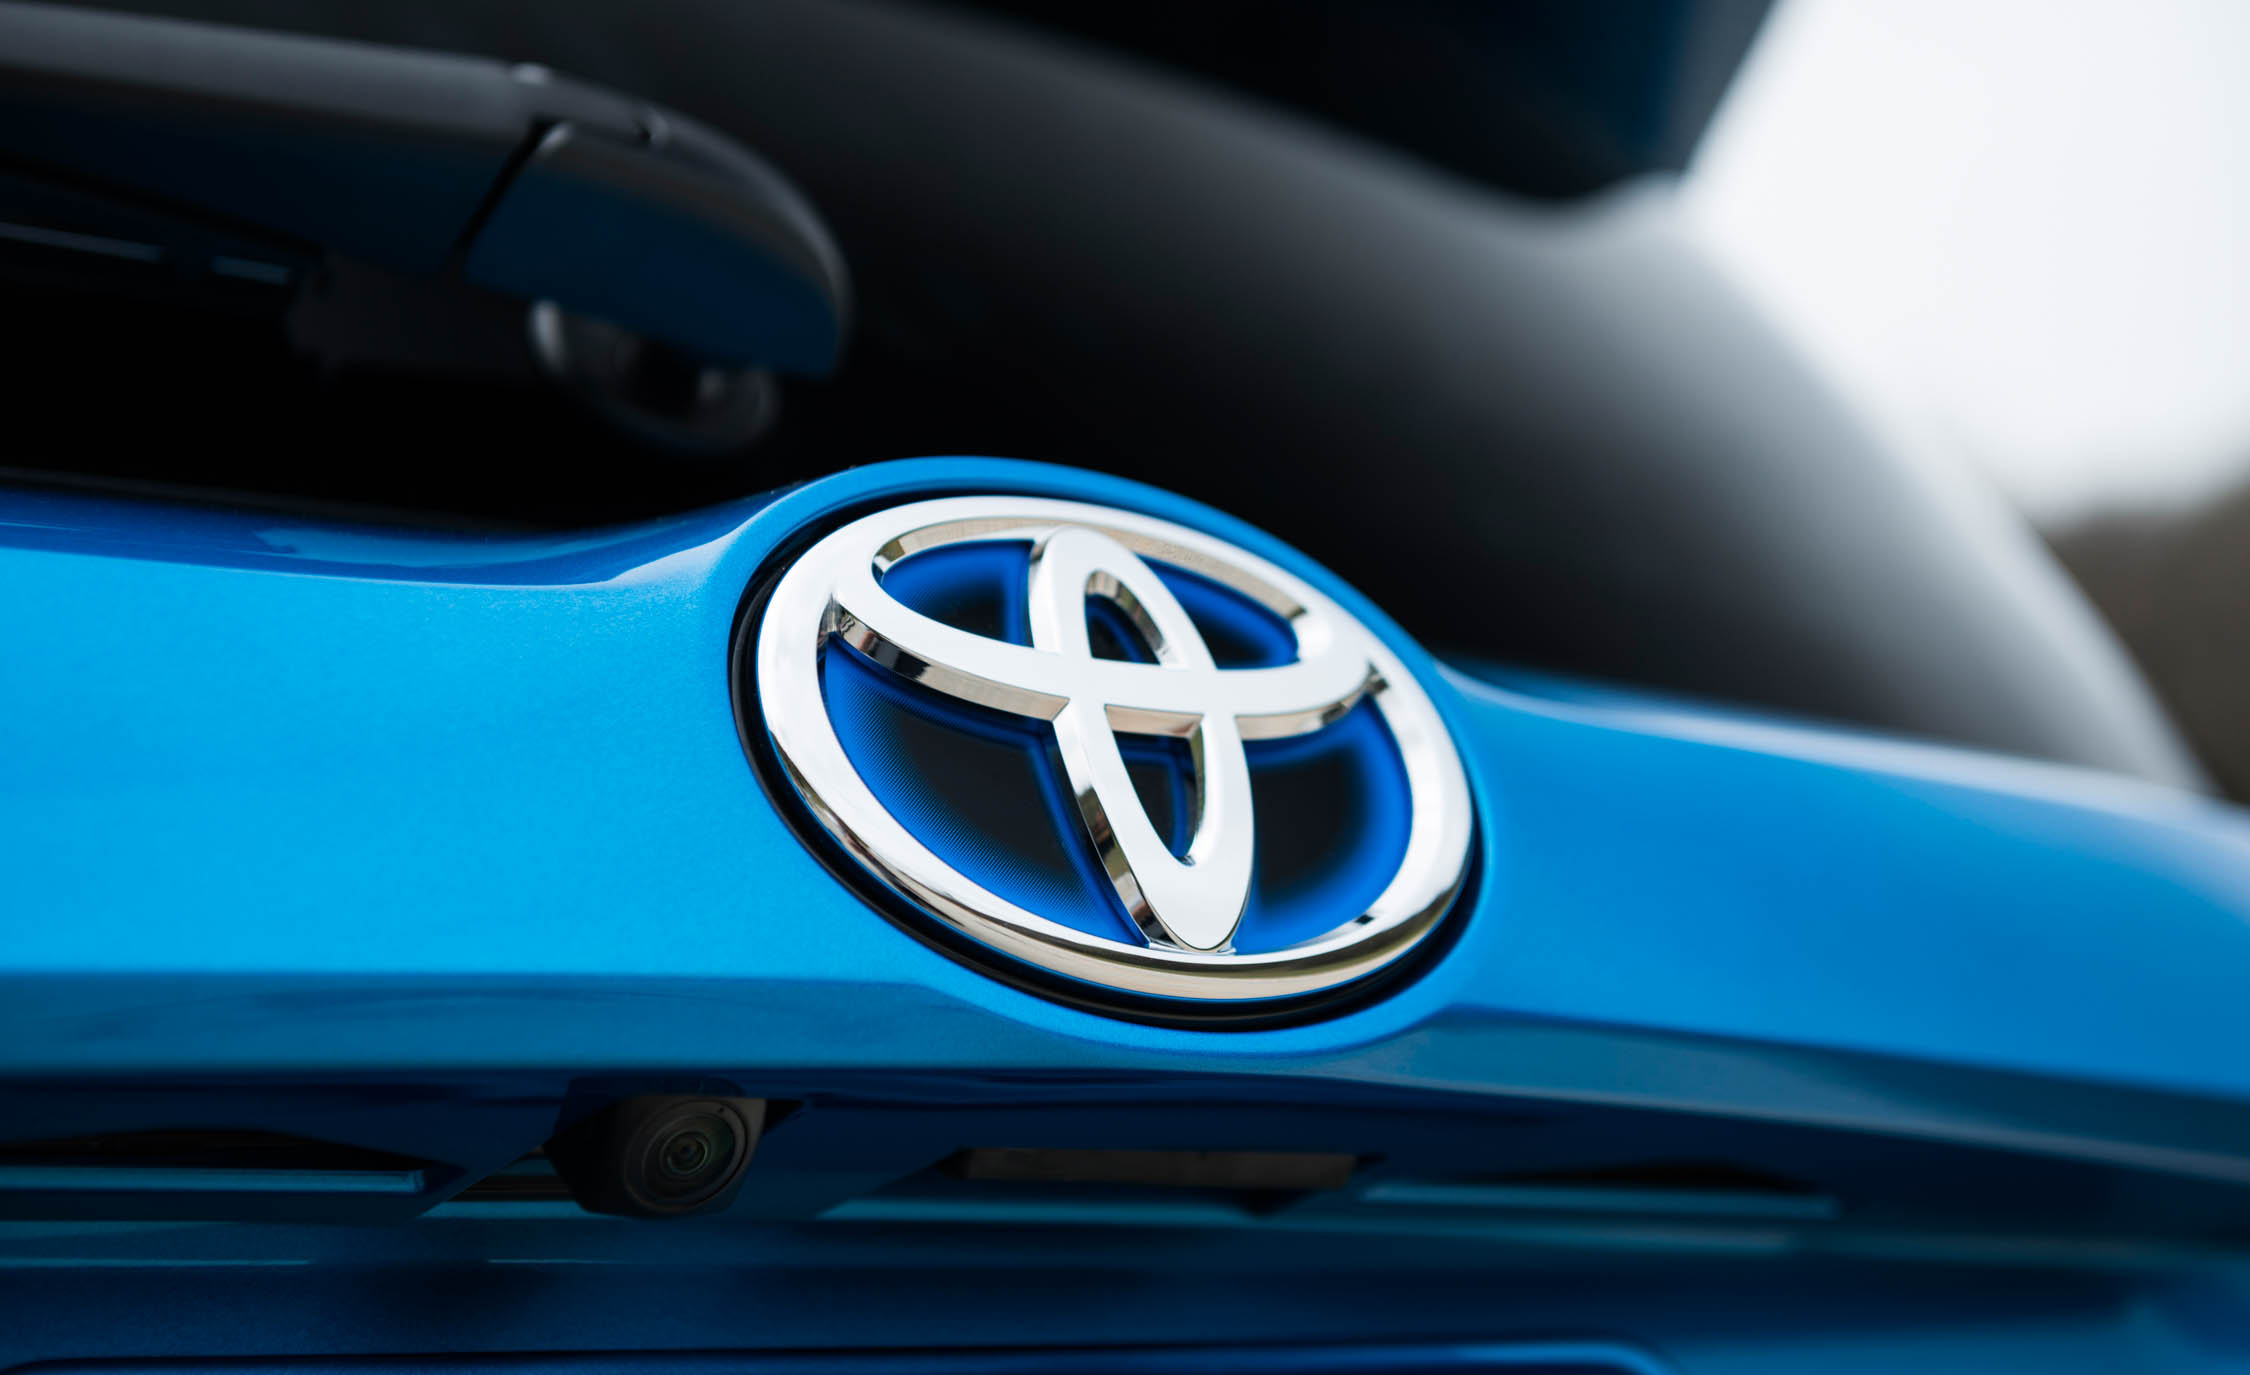 2016 Toyota Rav4 Hybrid Exterior Rear Badge (Photo 9 of 26)